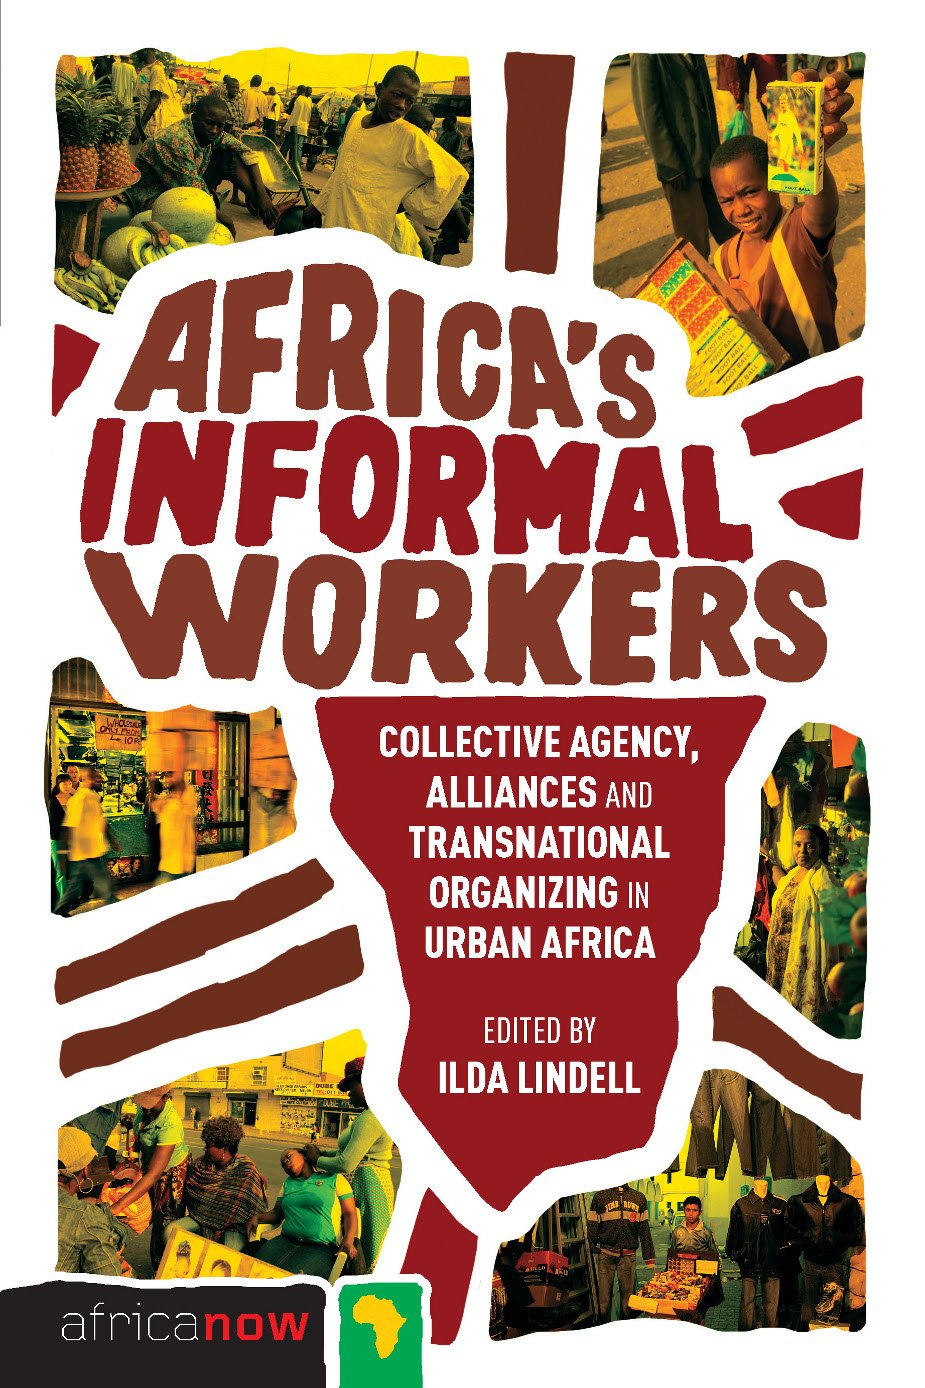 Africa's Informal Workers: Collective Agency, Alliances and Transnational Organizing in Urban Africa (Africa Now)